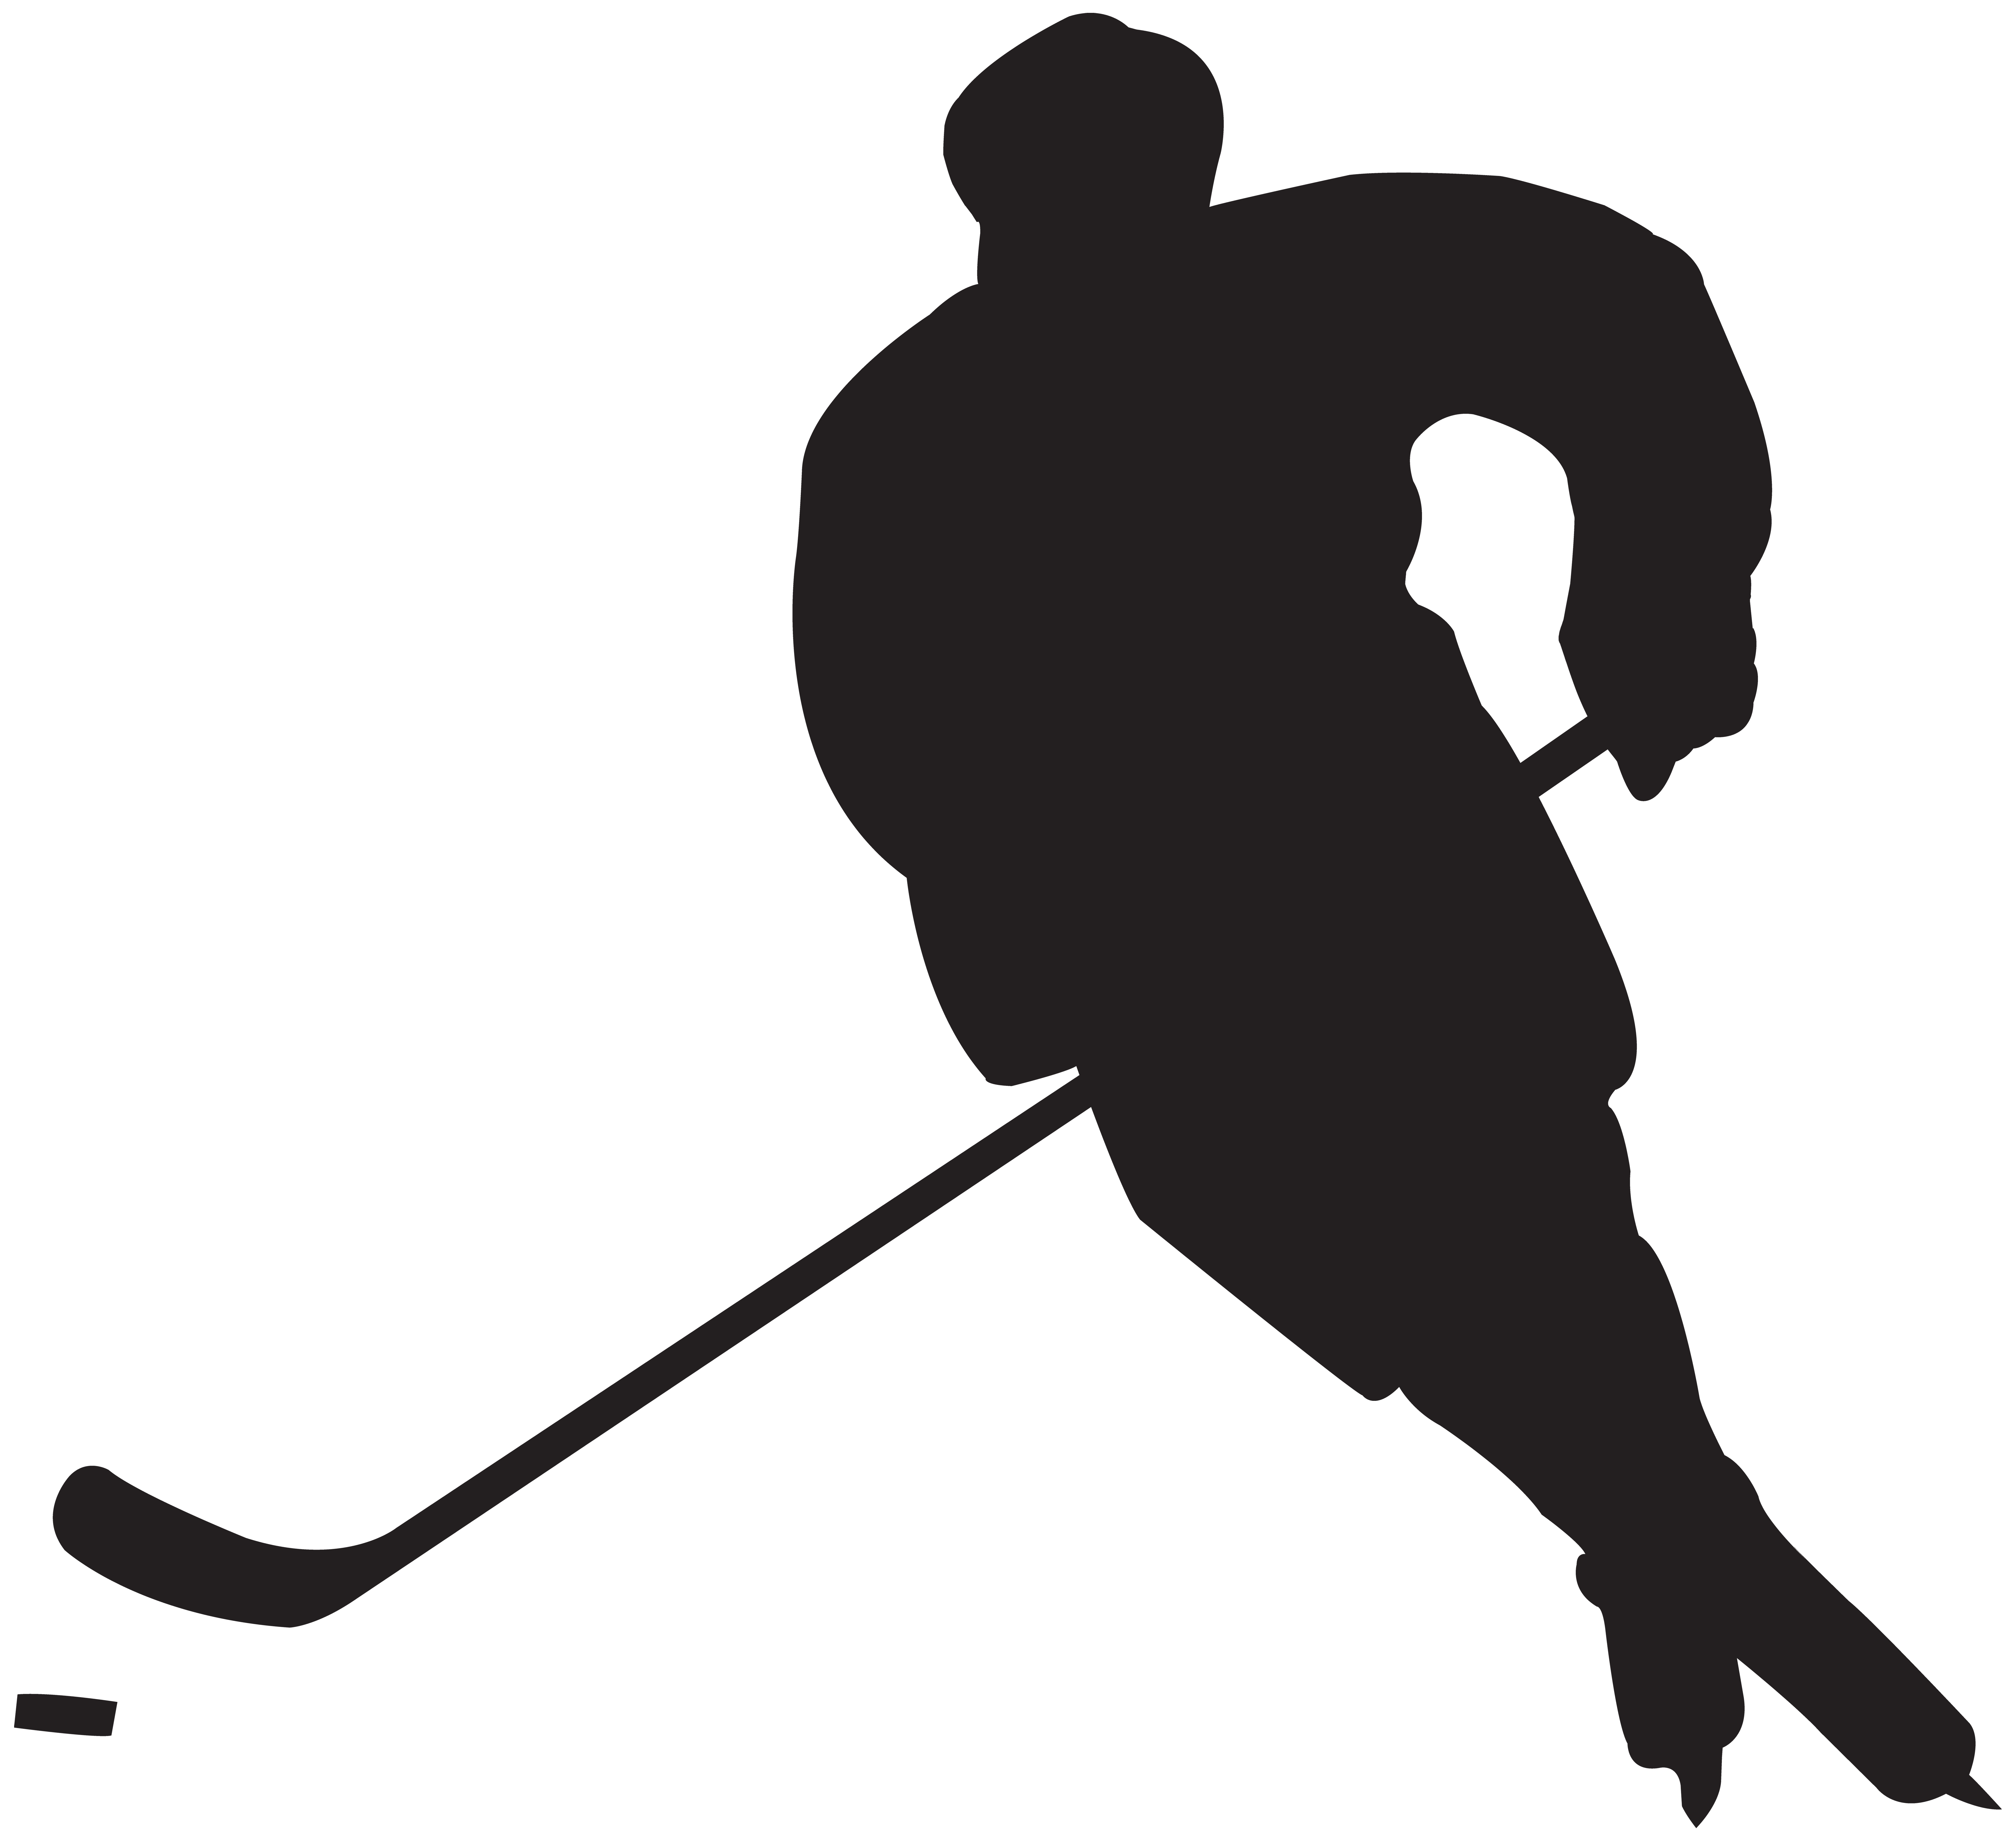 8000x7307 Hockey Player Silhouette PNG Clip Artu200b Gallery Yopriceville